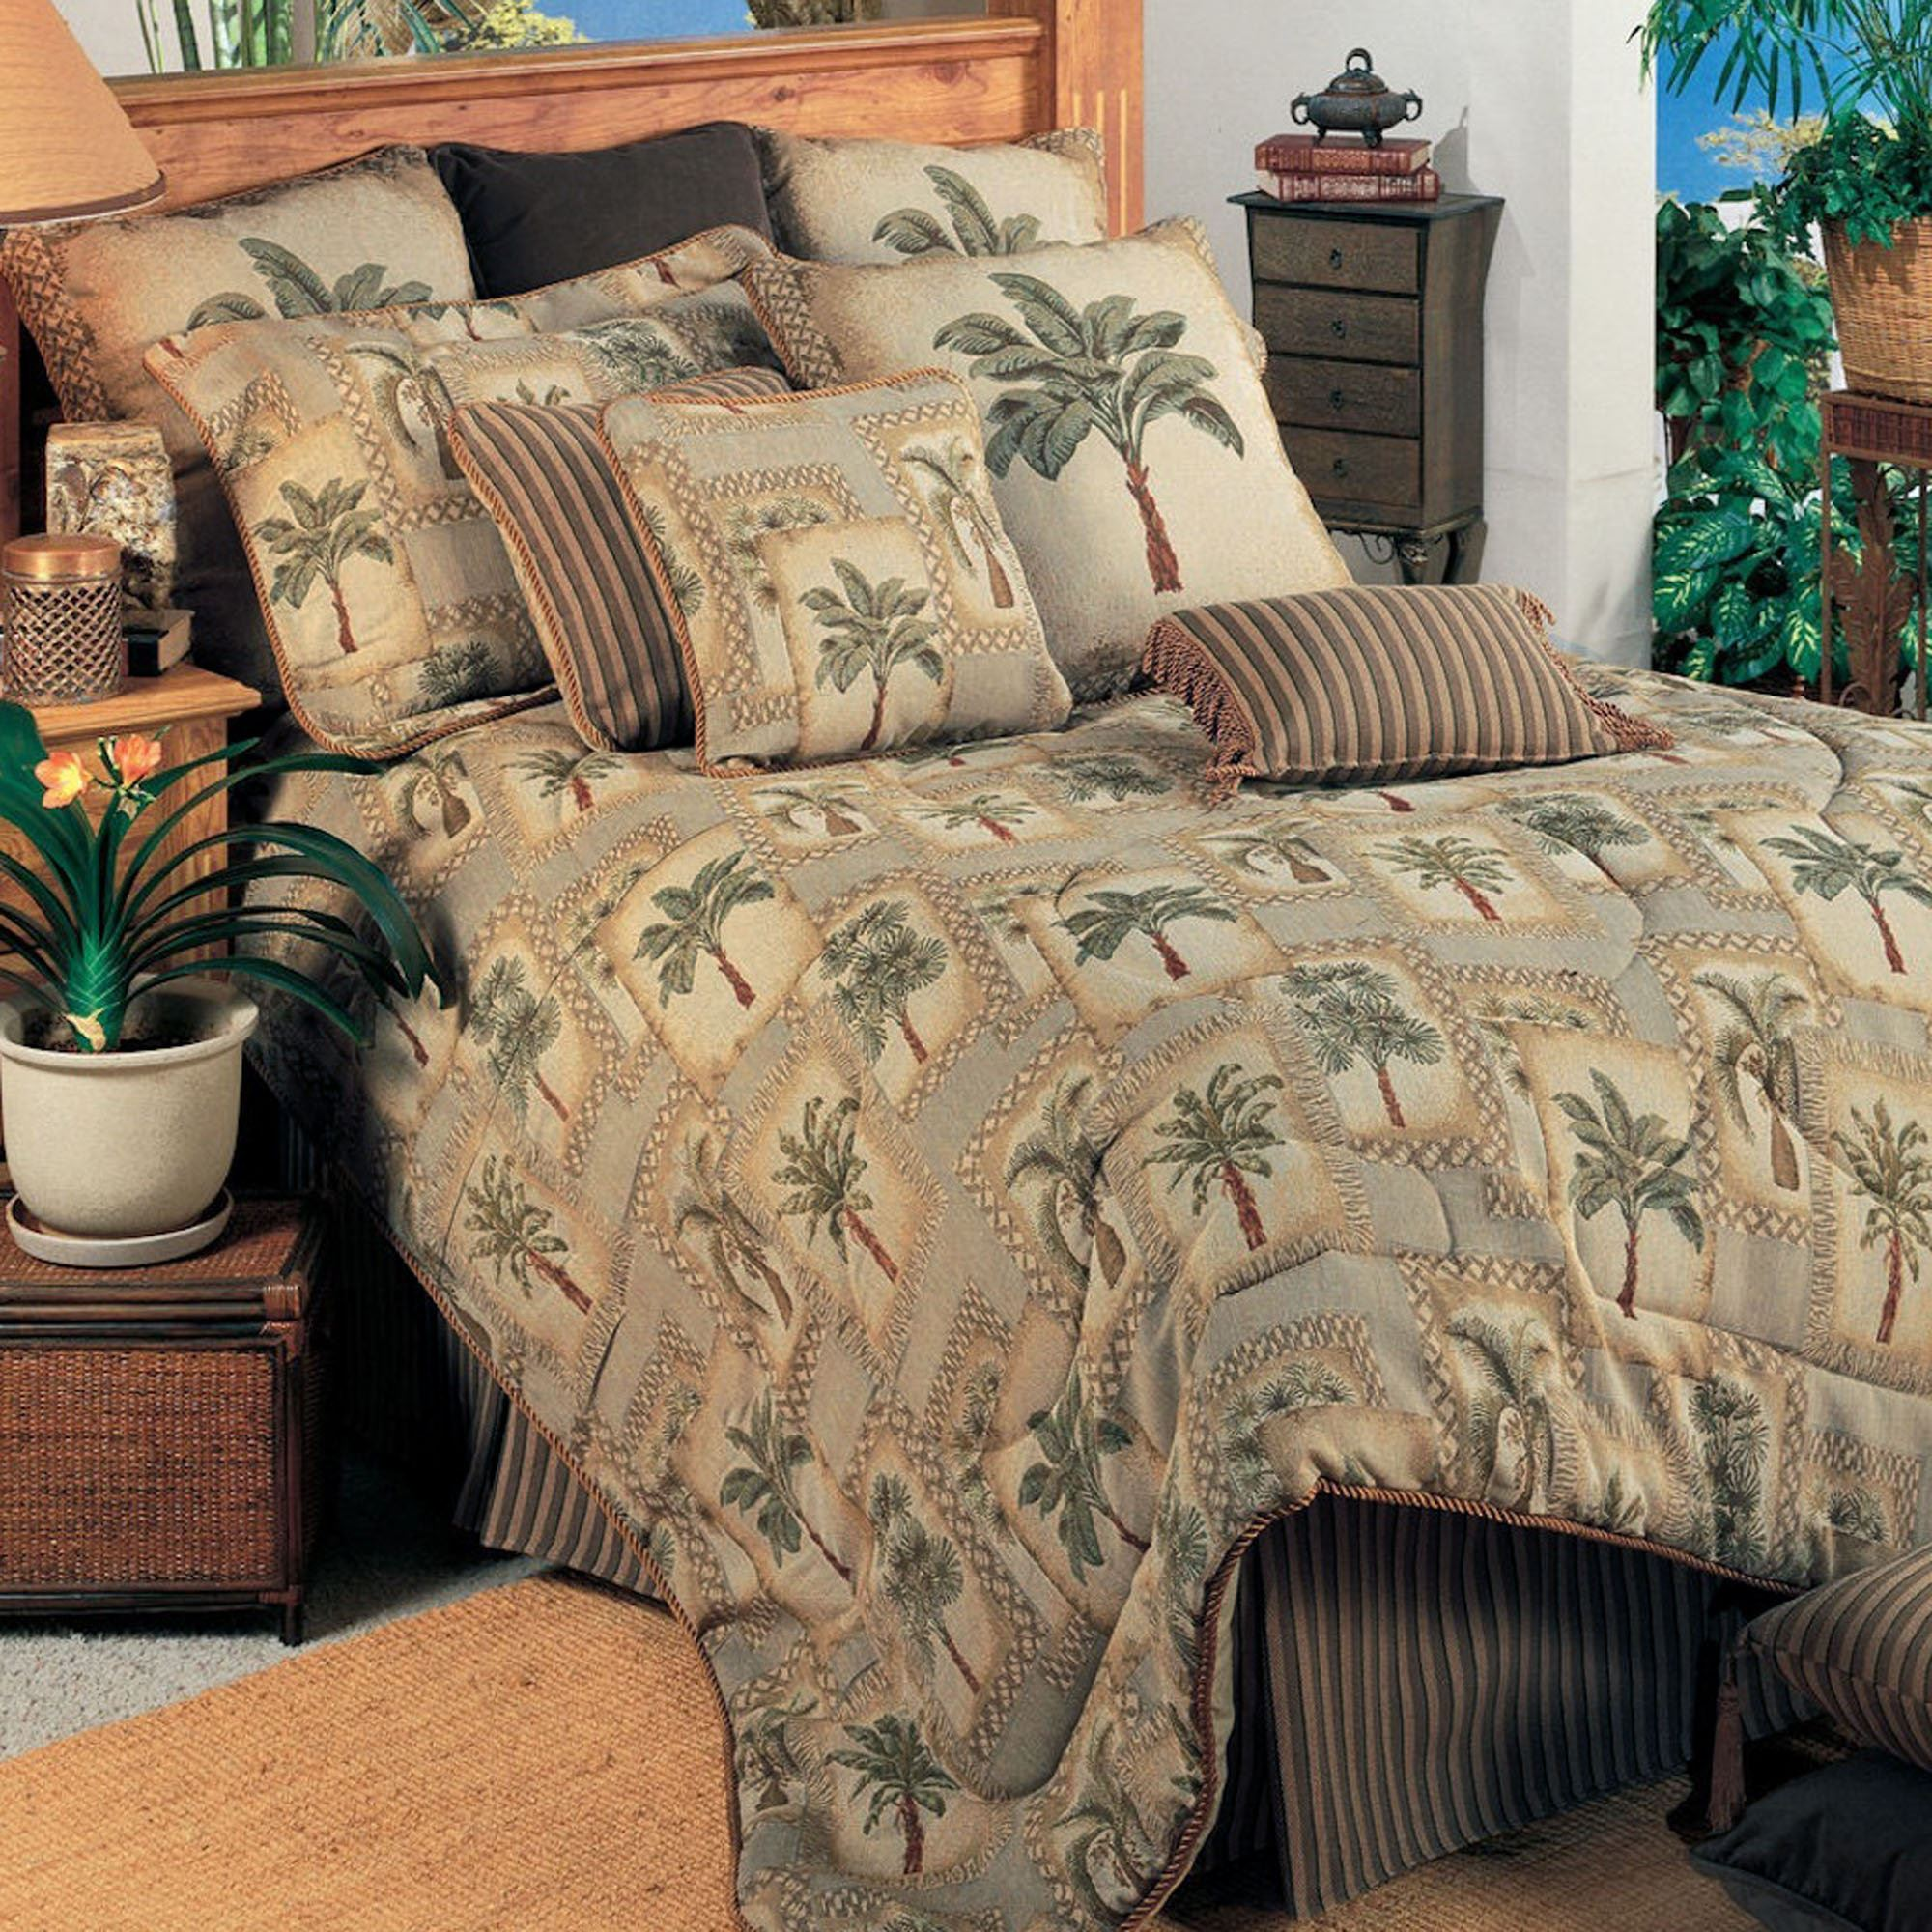 Bedroom Sets Clearance Free Shipping: Palm Grove Tropical Palm Tree Comforter Bedding